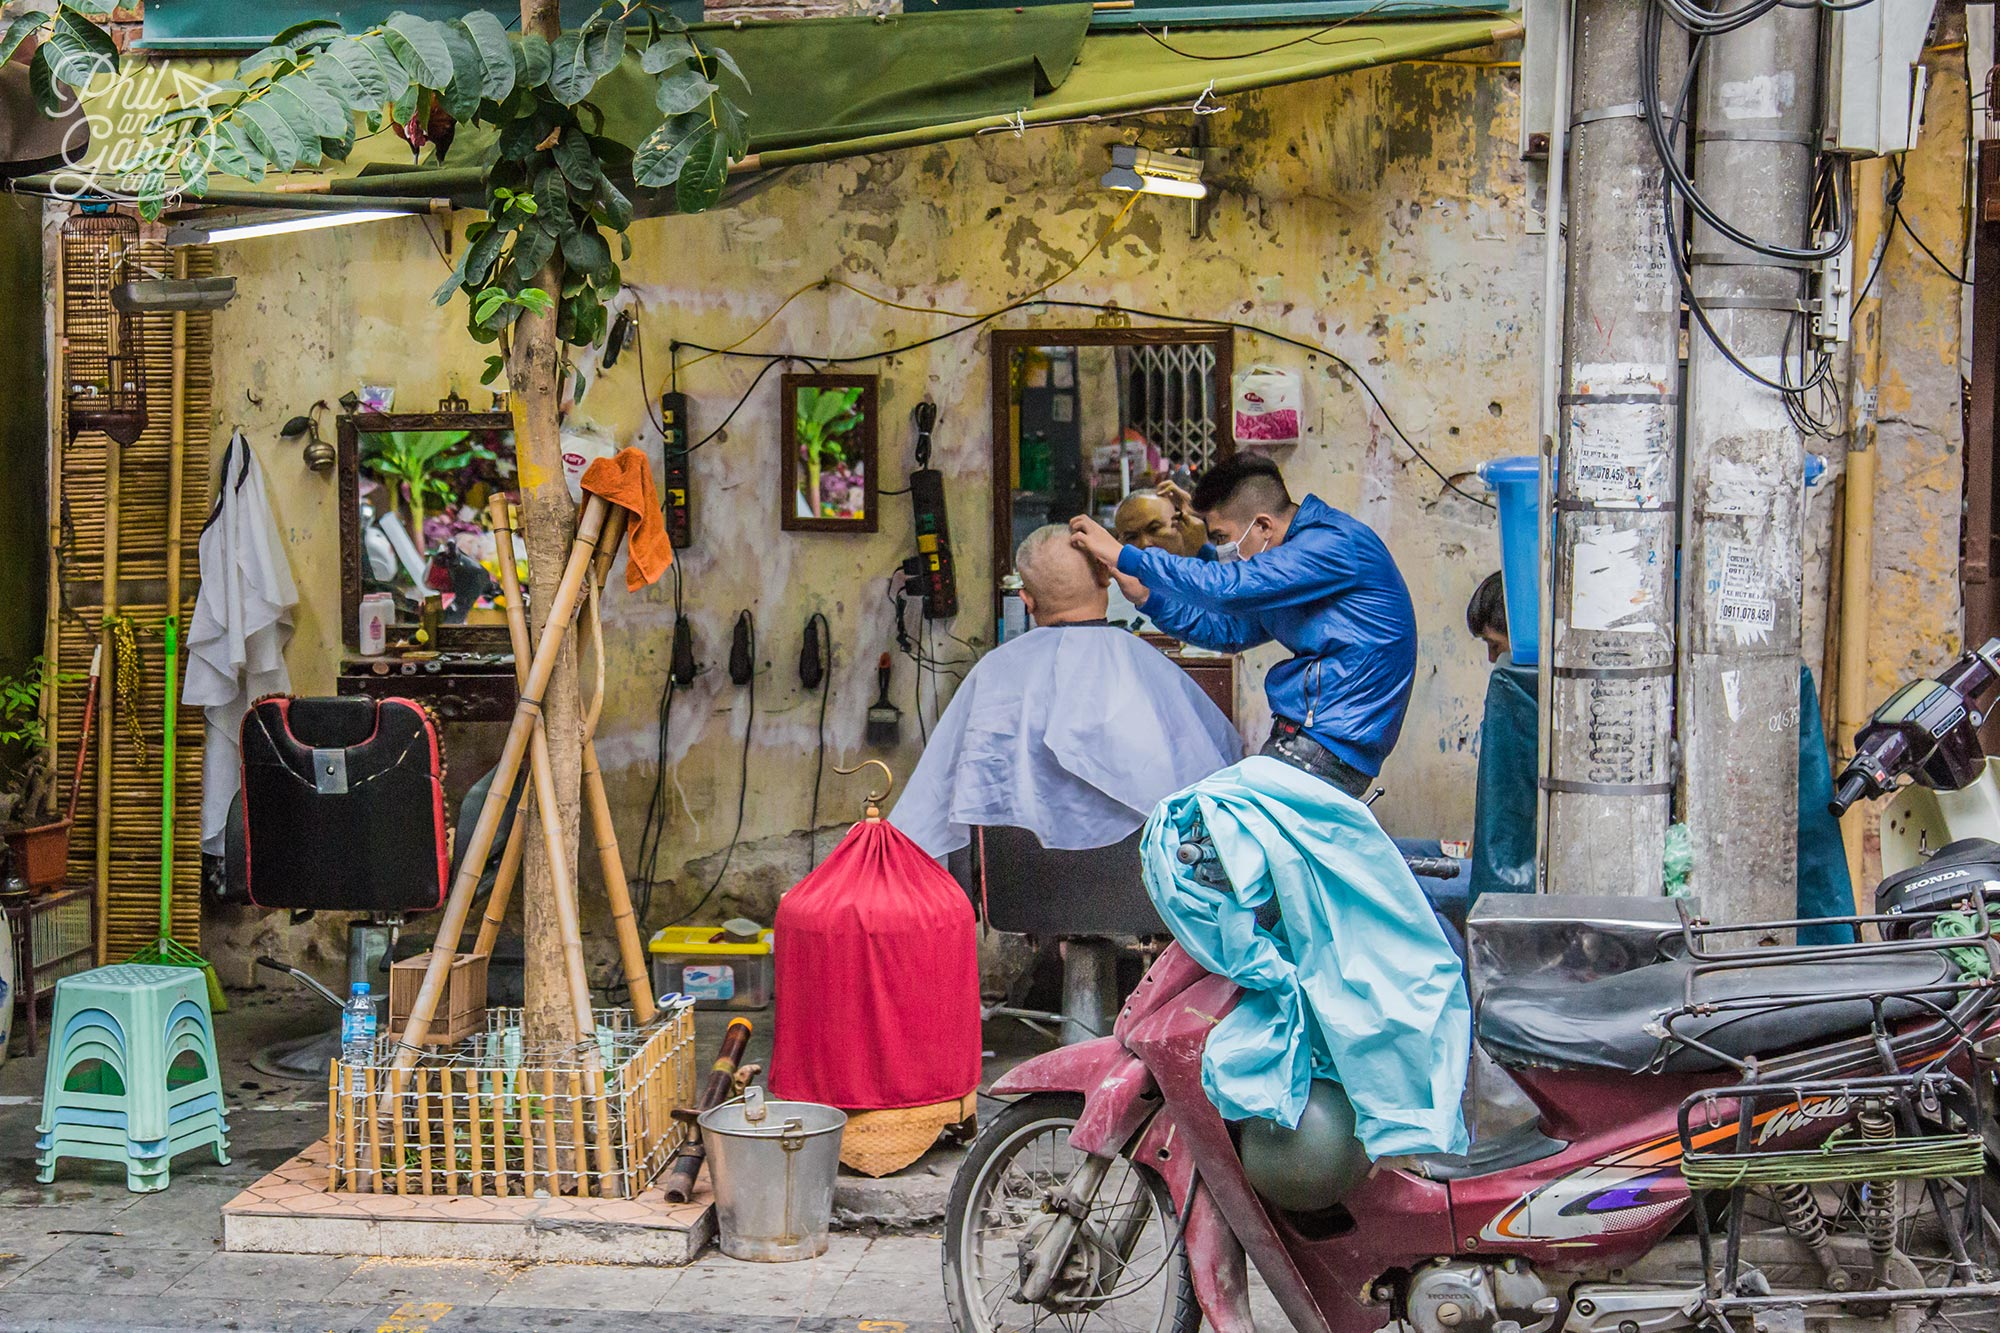 How's this for an alfresco barber's shop?